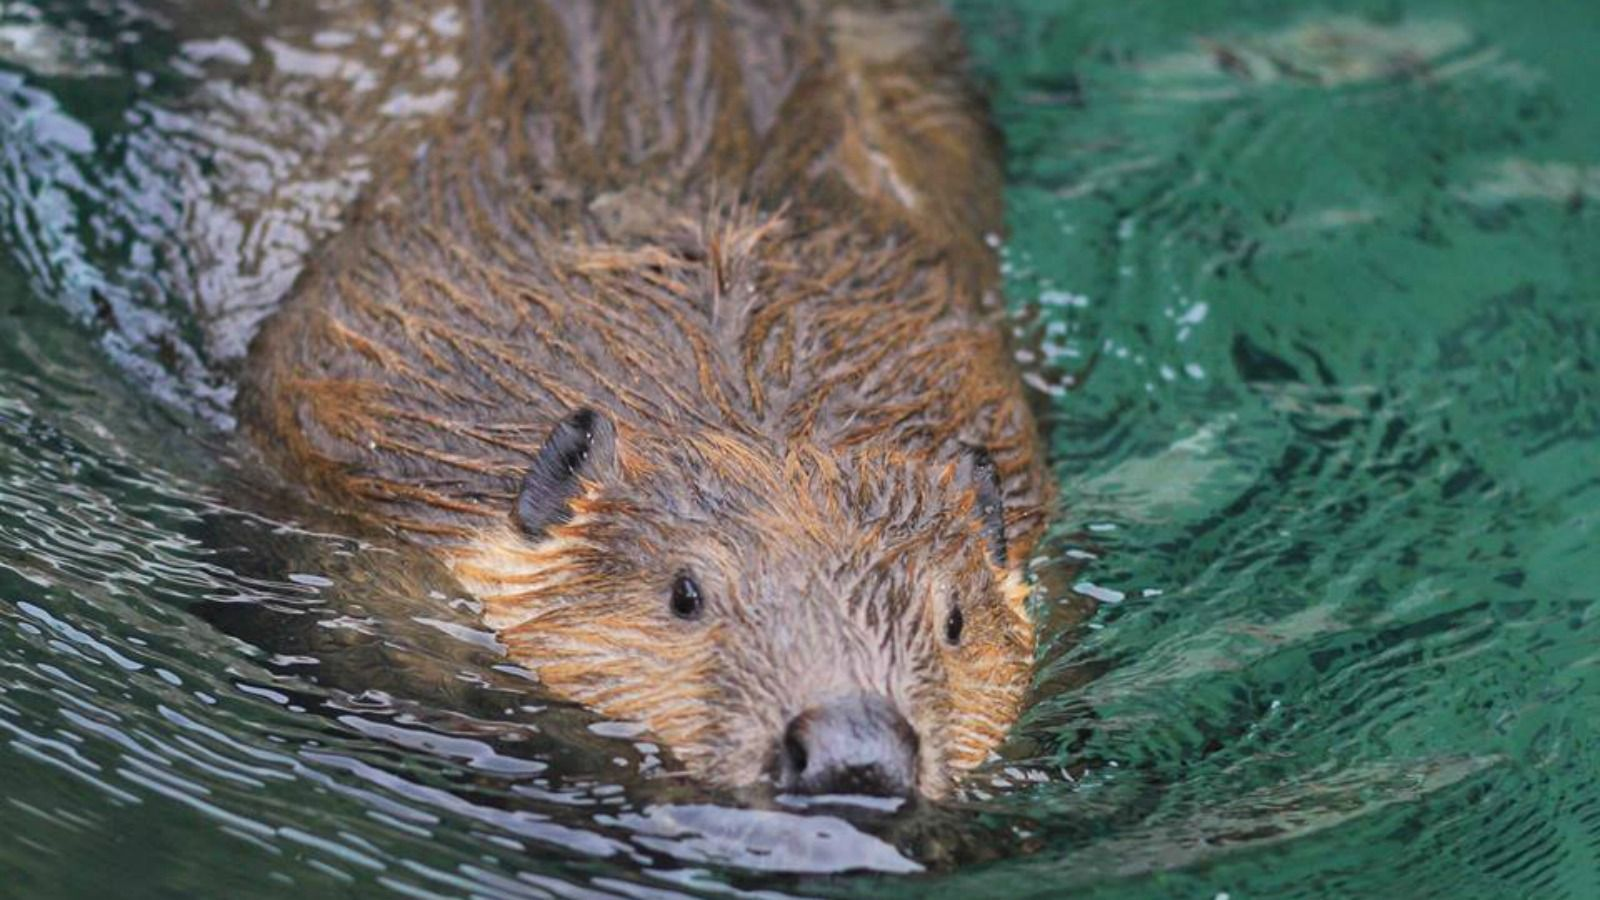 Experience Wildlife - Timber The Beaver